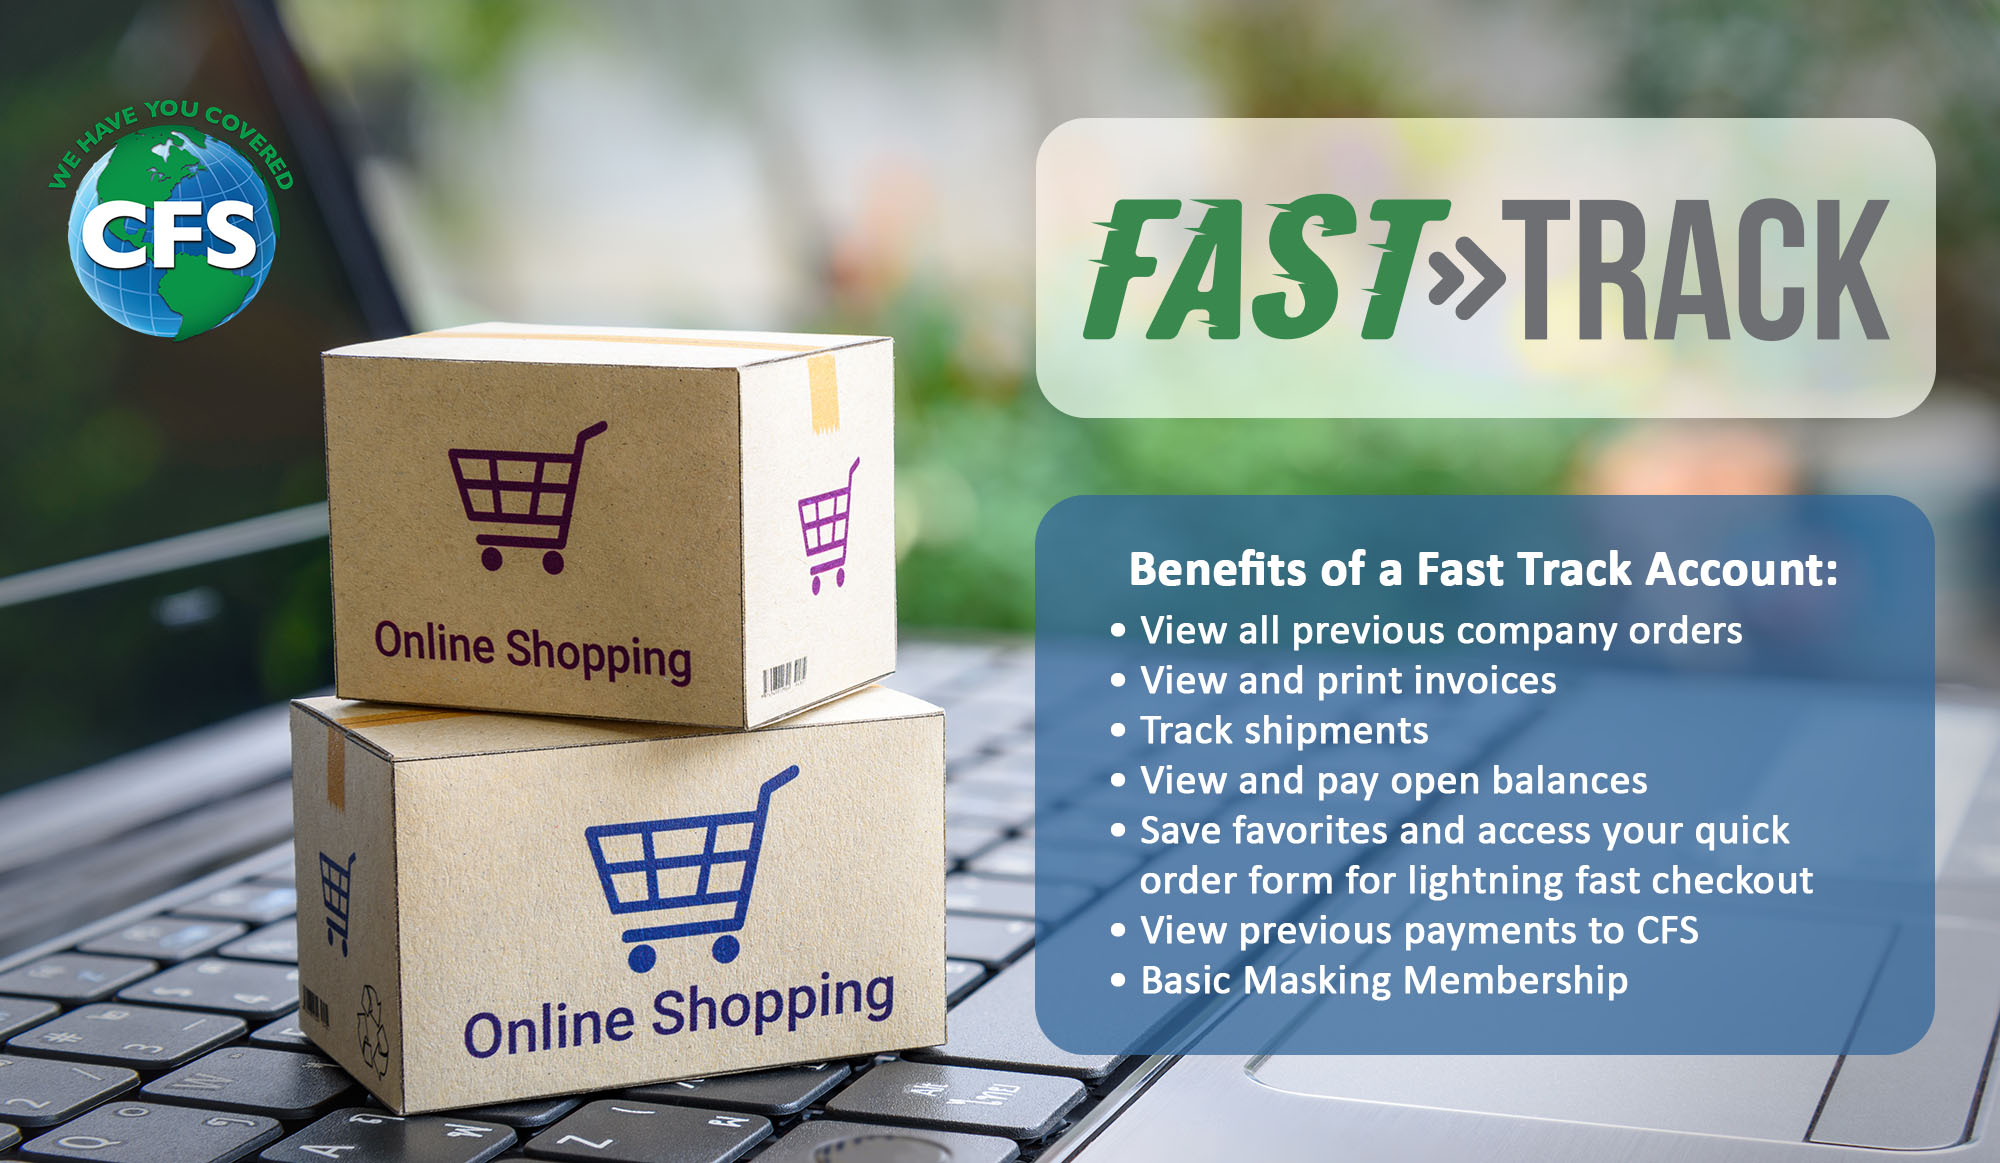 Get Your FREE Fast Track Account